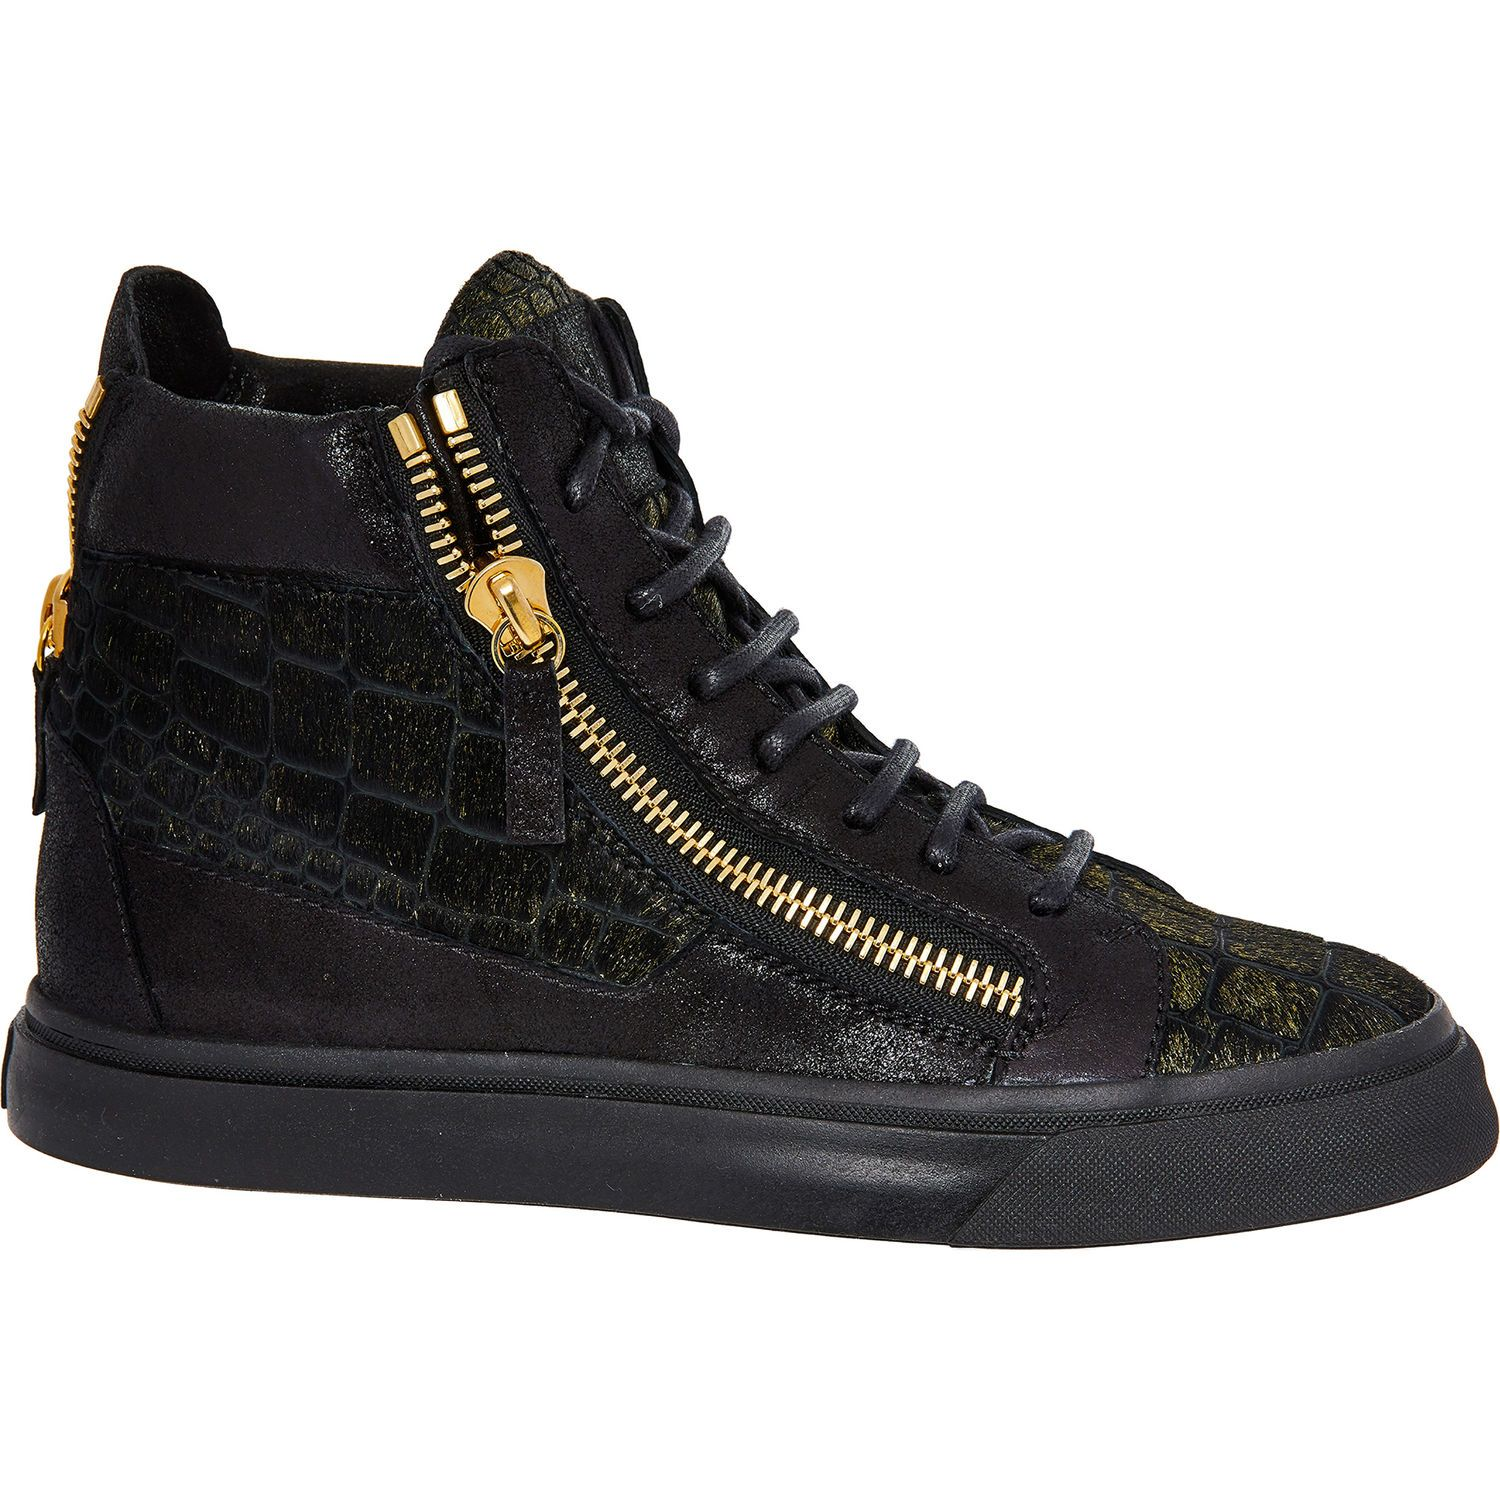 5f324f67fbd Black Leather High Top Trainers - Gold Label Shoes - Women s Gold Label -  Edits -